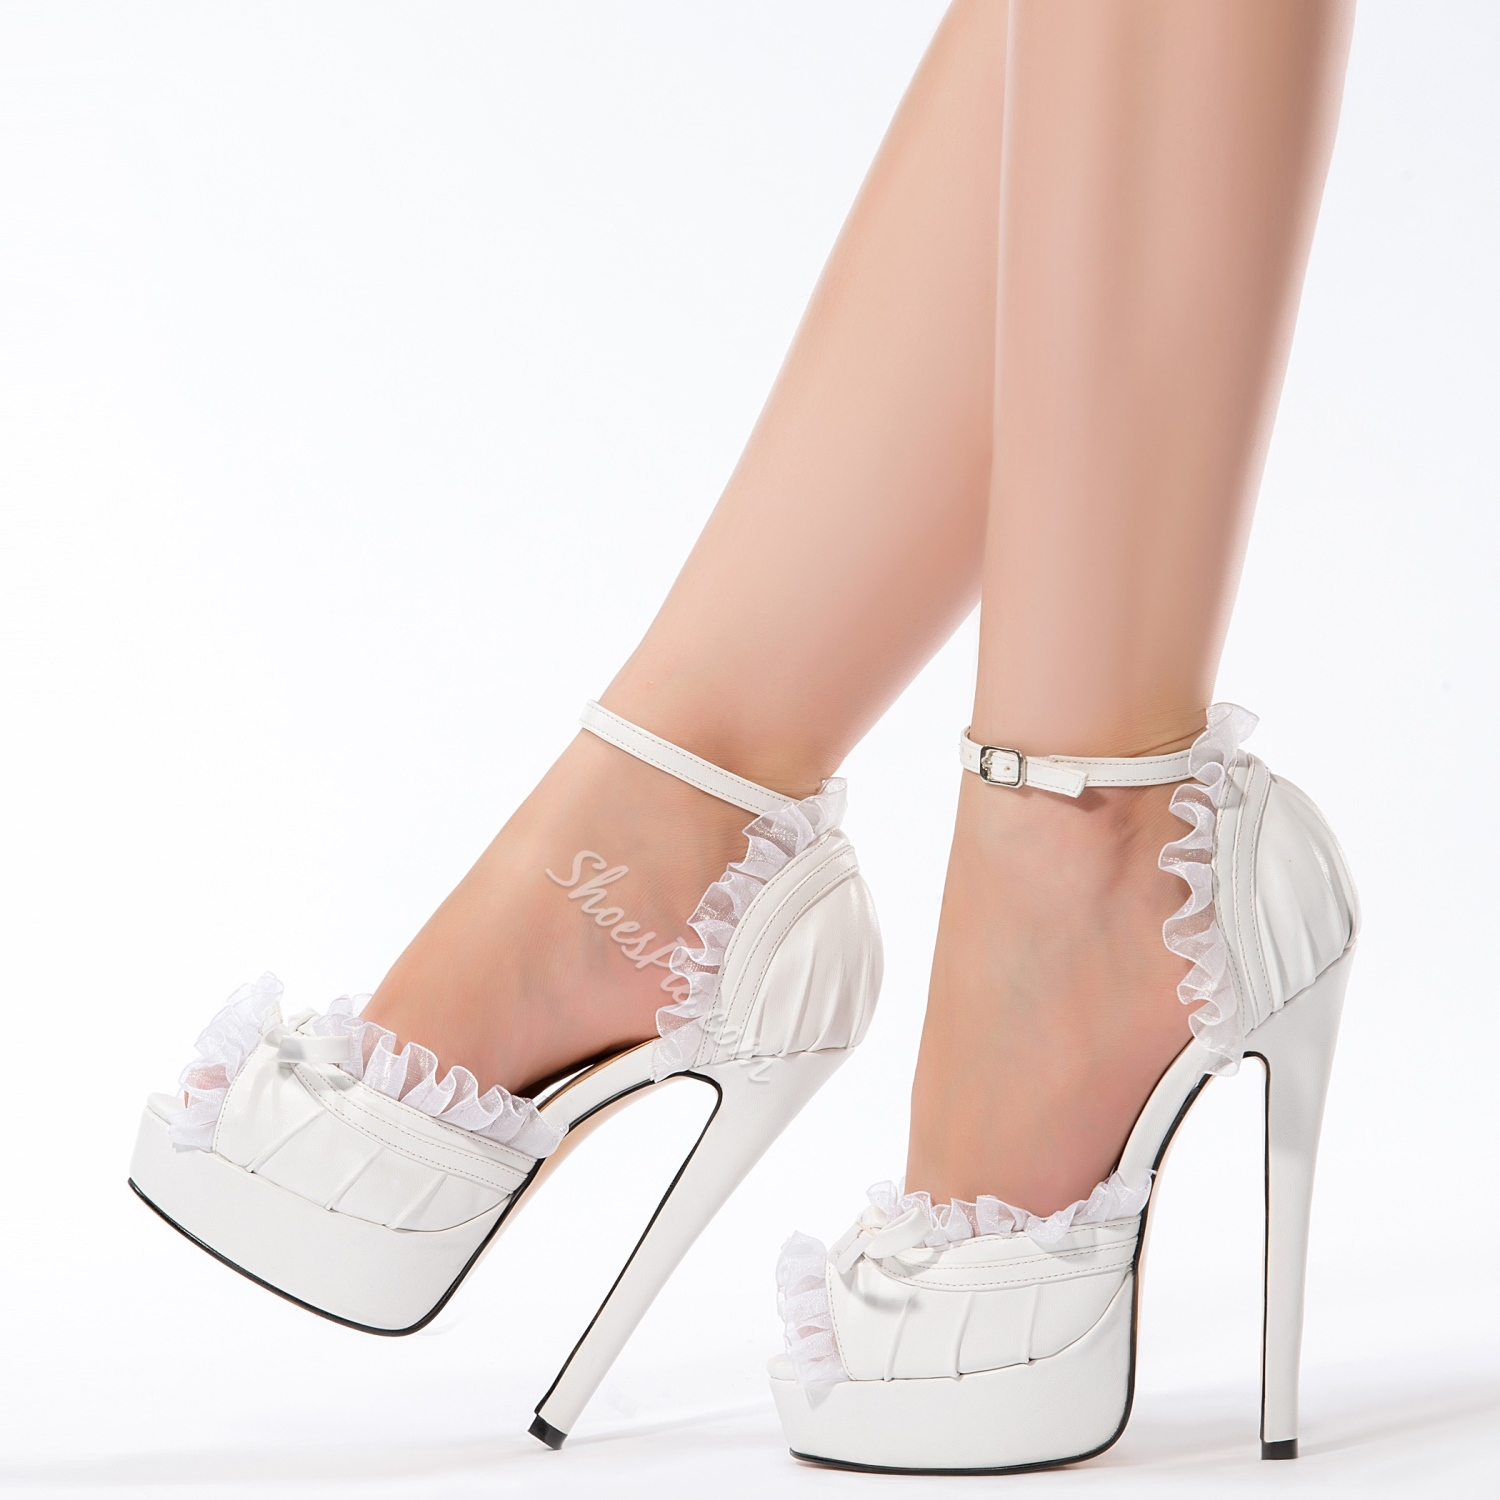 Elegant White PU Peep Toe Ankle Strap High Heel Shoes